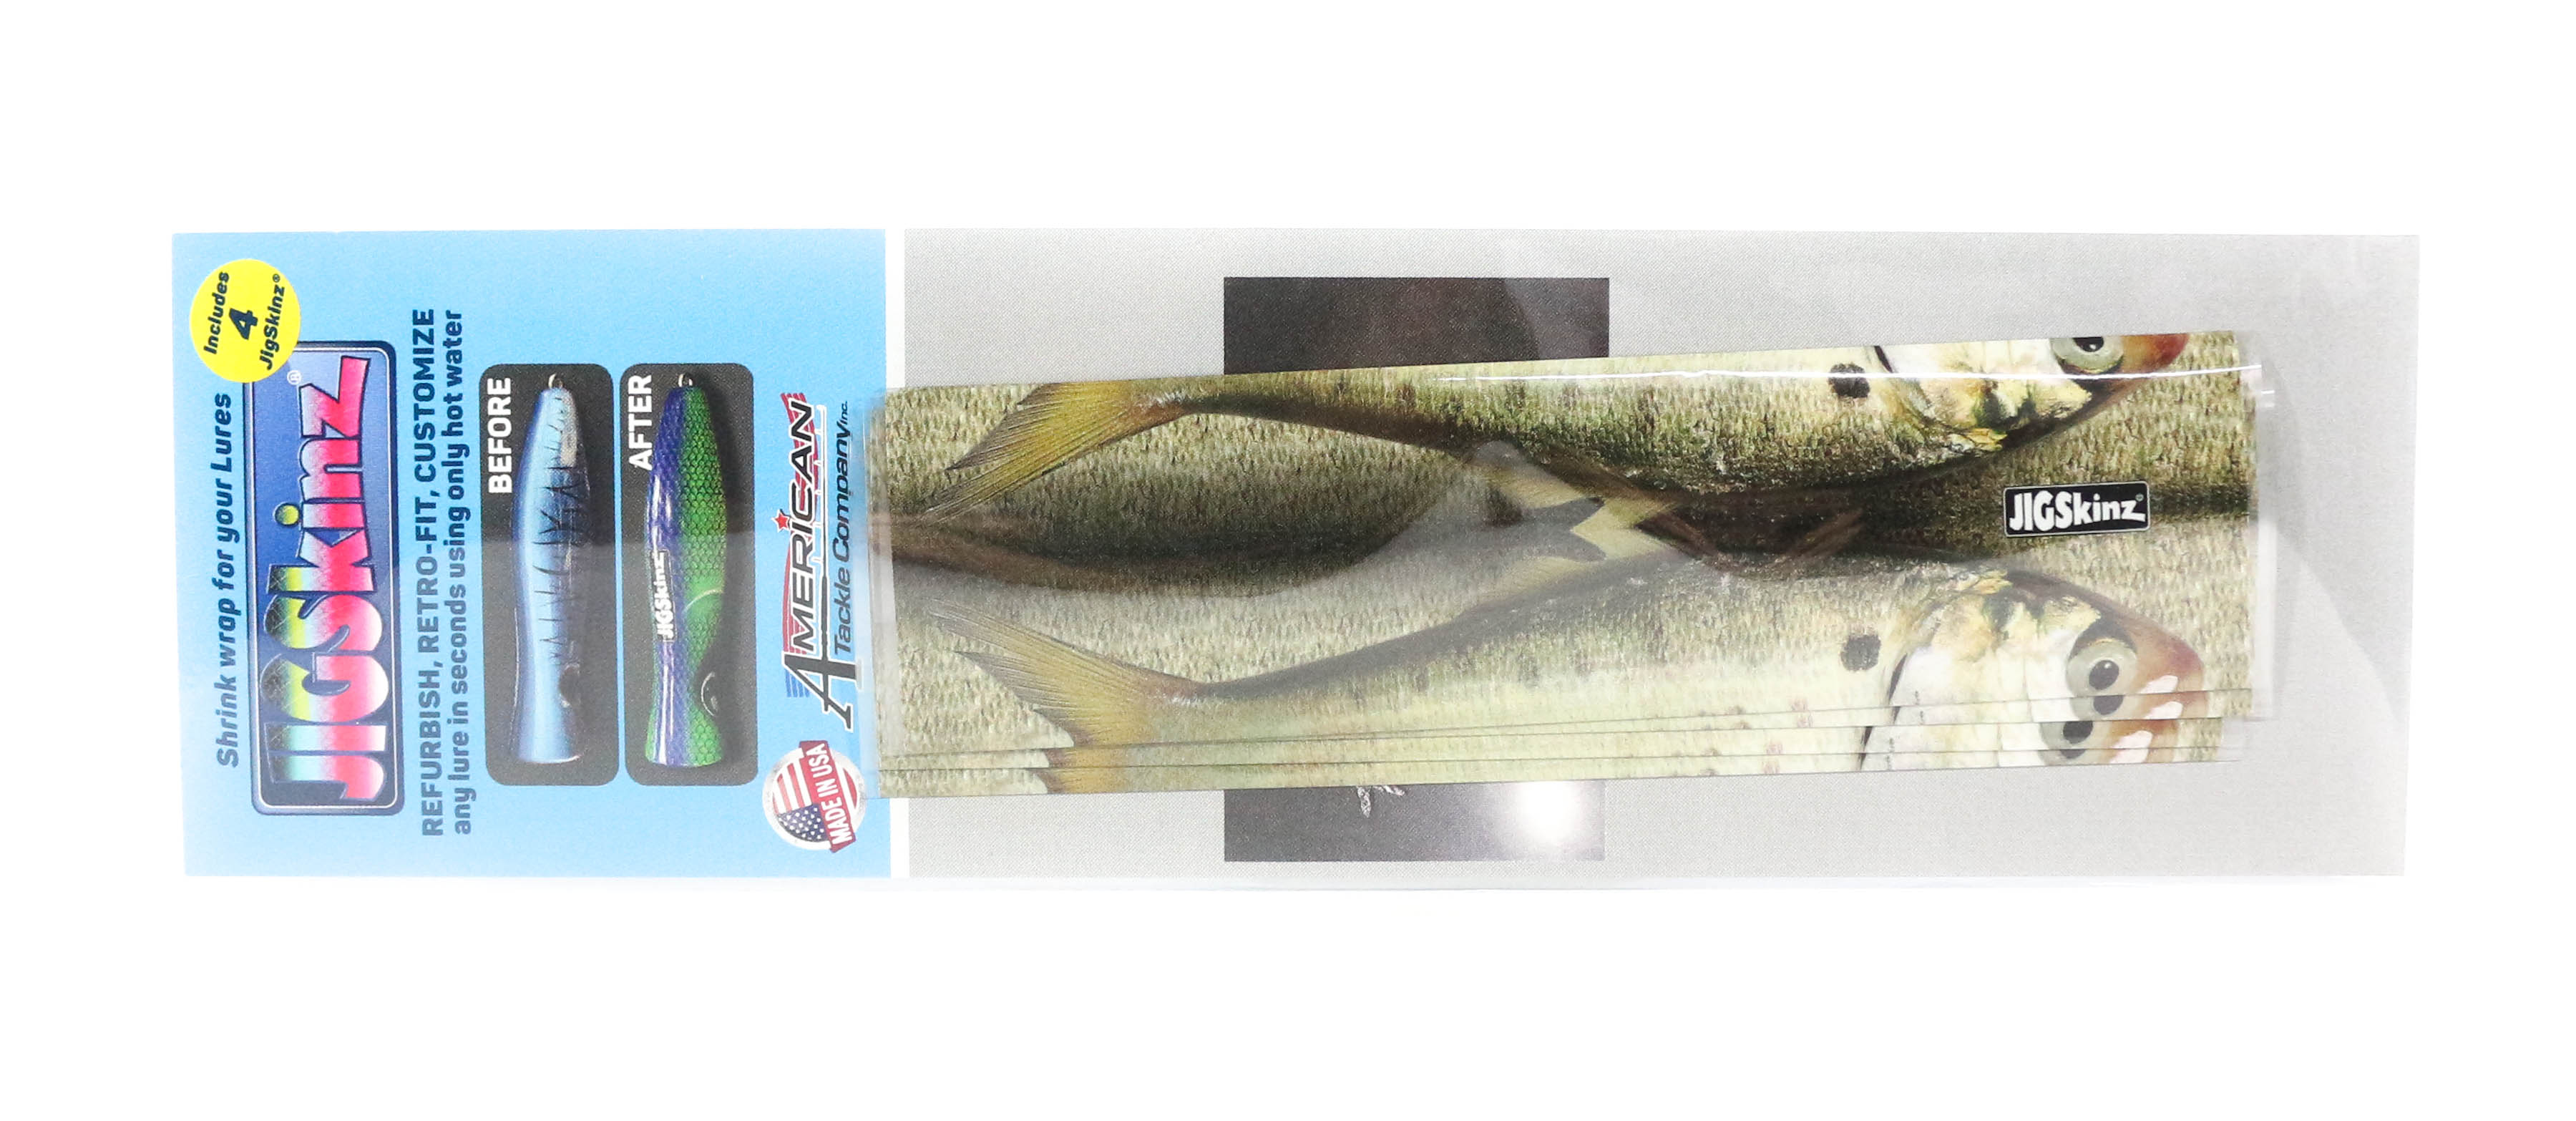 Jigskinz JZRLMH-S4 RL Menhaden 140 x 70mm x 4 pieces Small (7790)